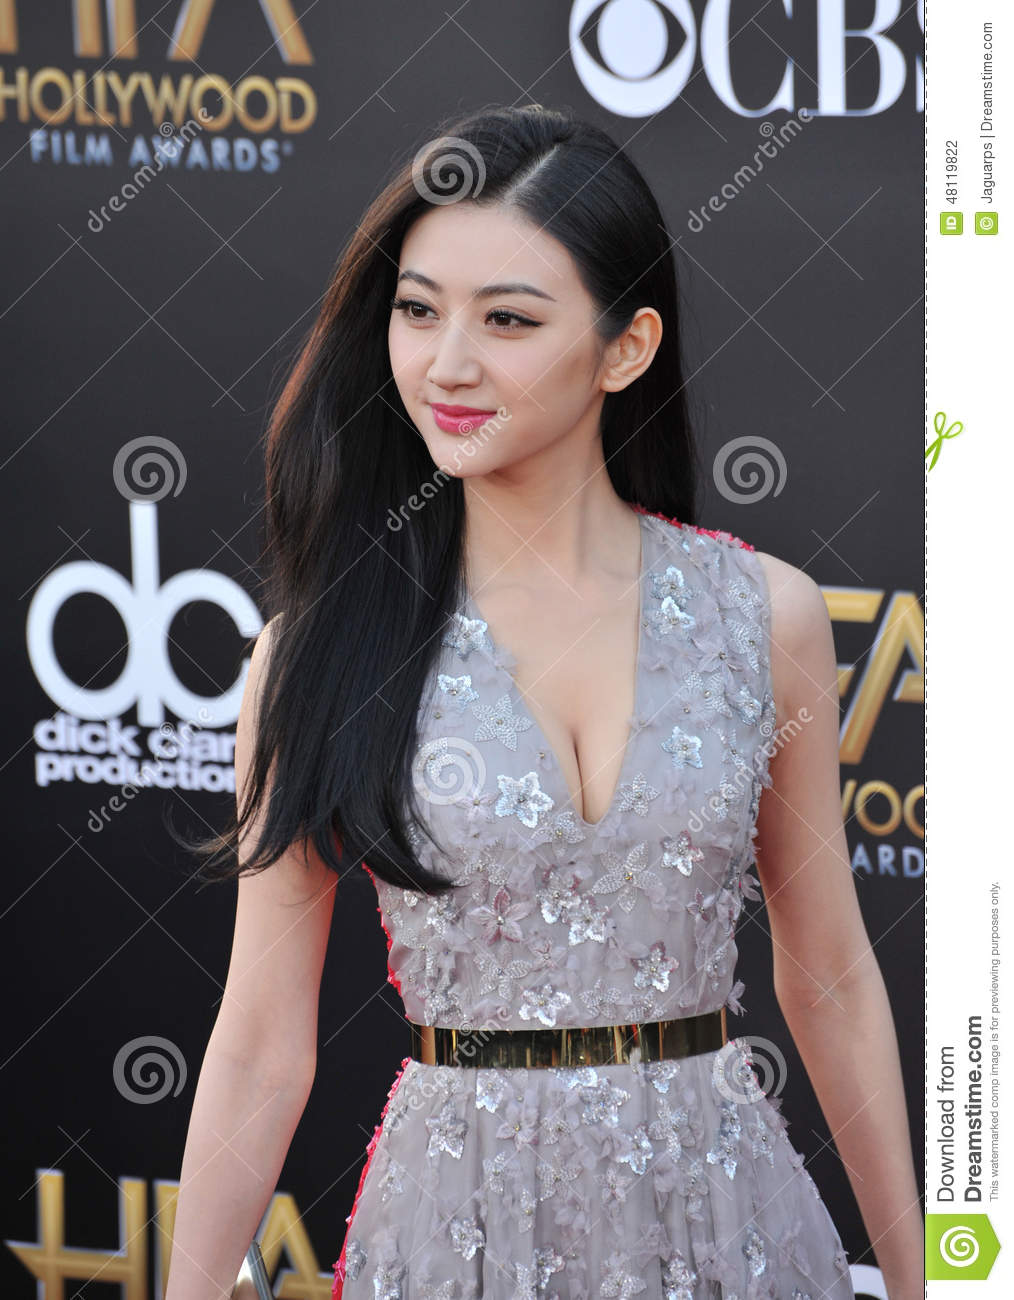 LOS ANGELES, CA - NOVEMBER 14, 2014: Jing Tian at the 2014 Hollywood ...